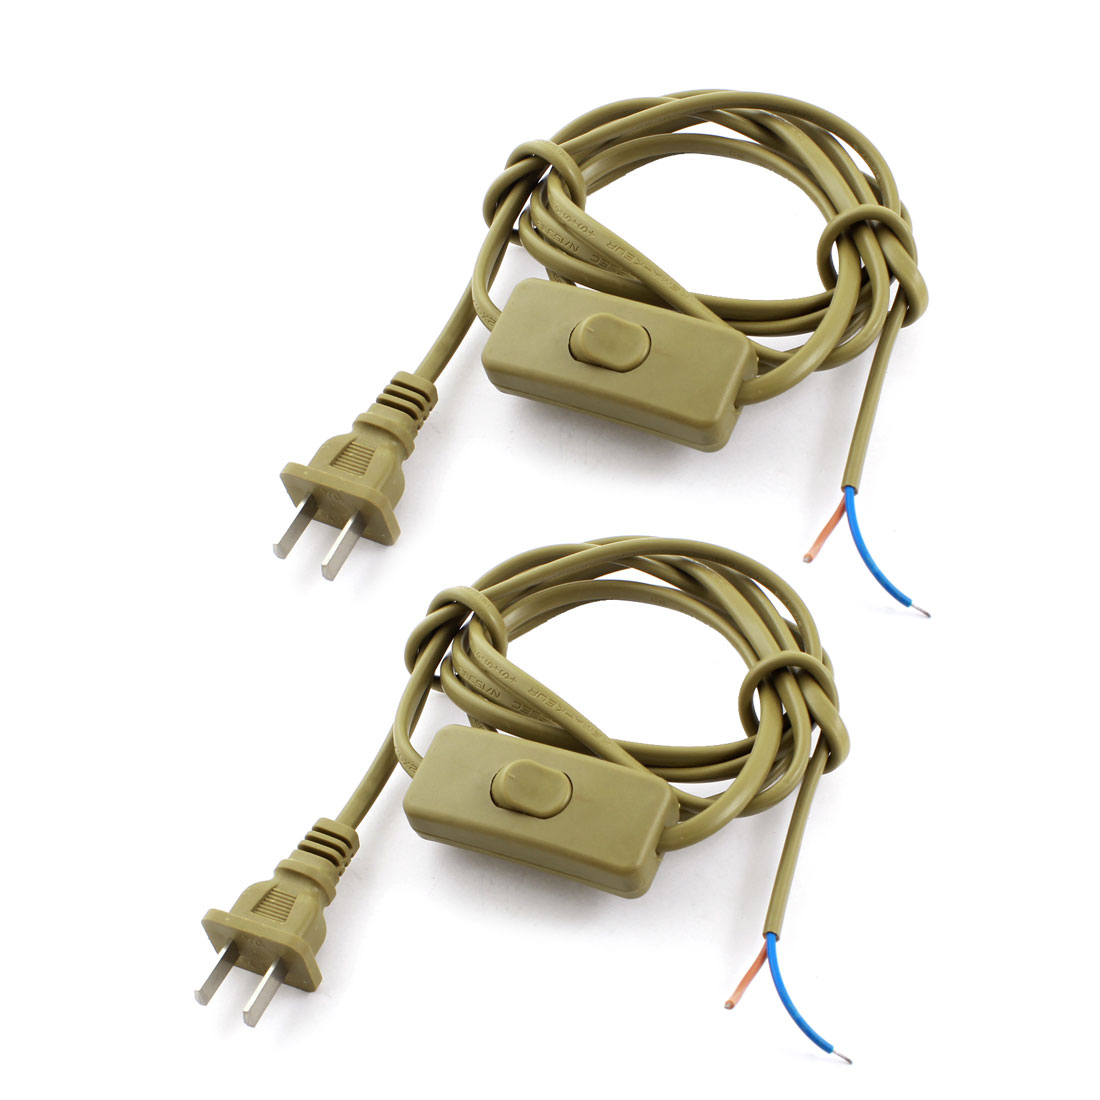 2Pcs Brown US Plug 2Pin On-Off SPDT Locking Light Power Cord Inline Button Switch 1.8M AC110V AC250V